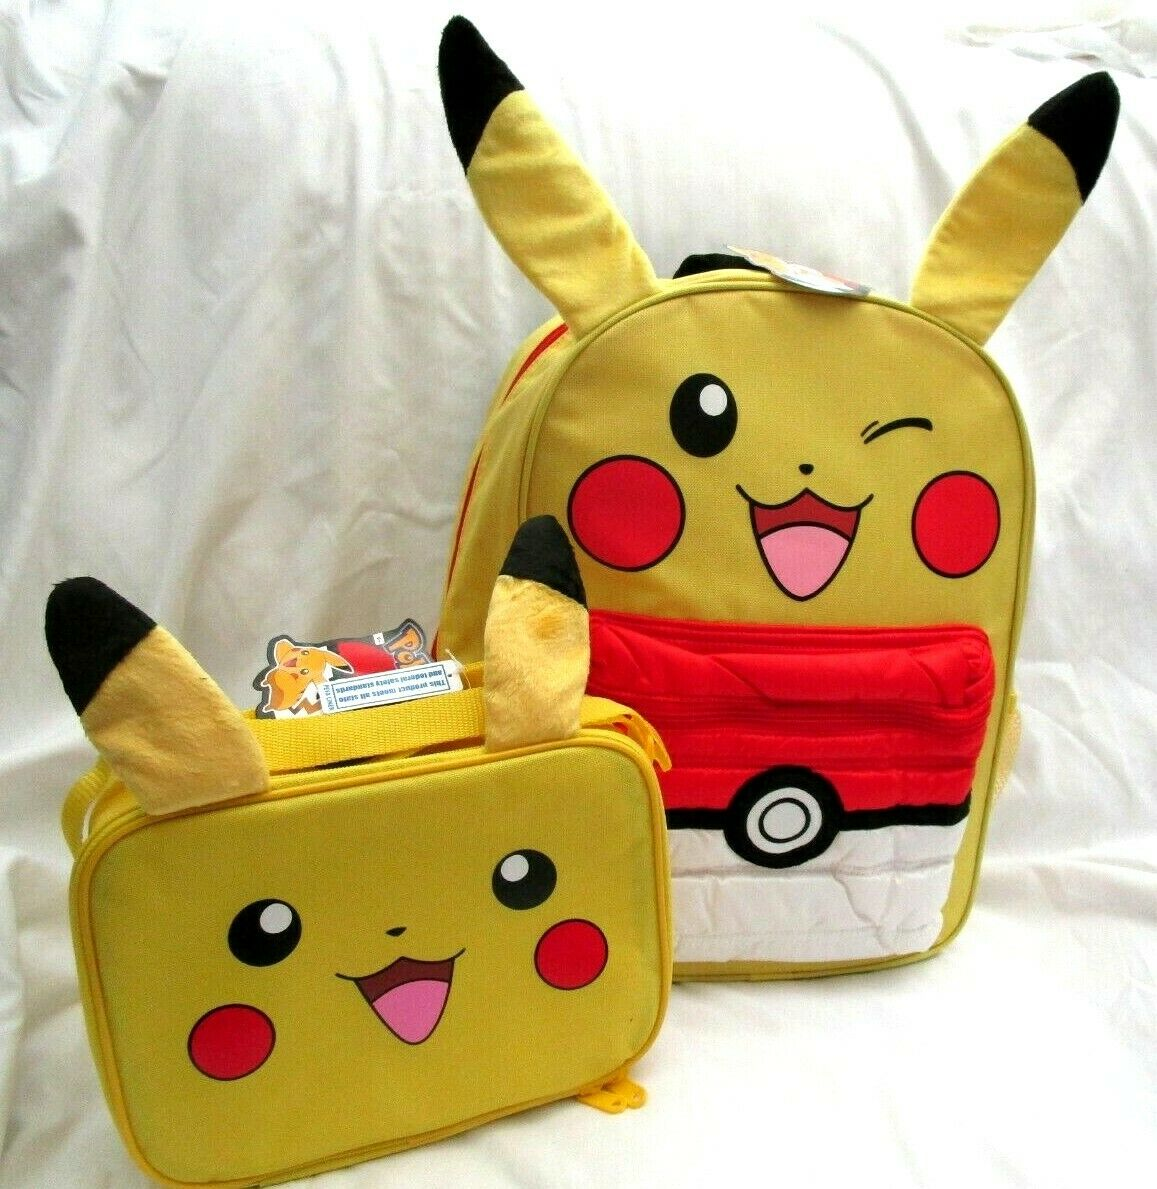 Pikachu Ears with Pouch 16  Backpack + 9.5  Pikachu with Ears Lunch box-New